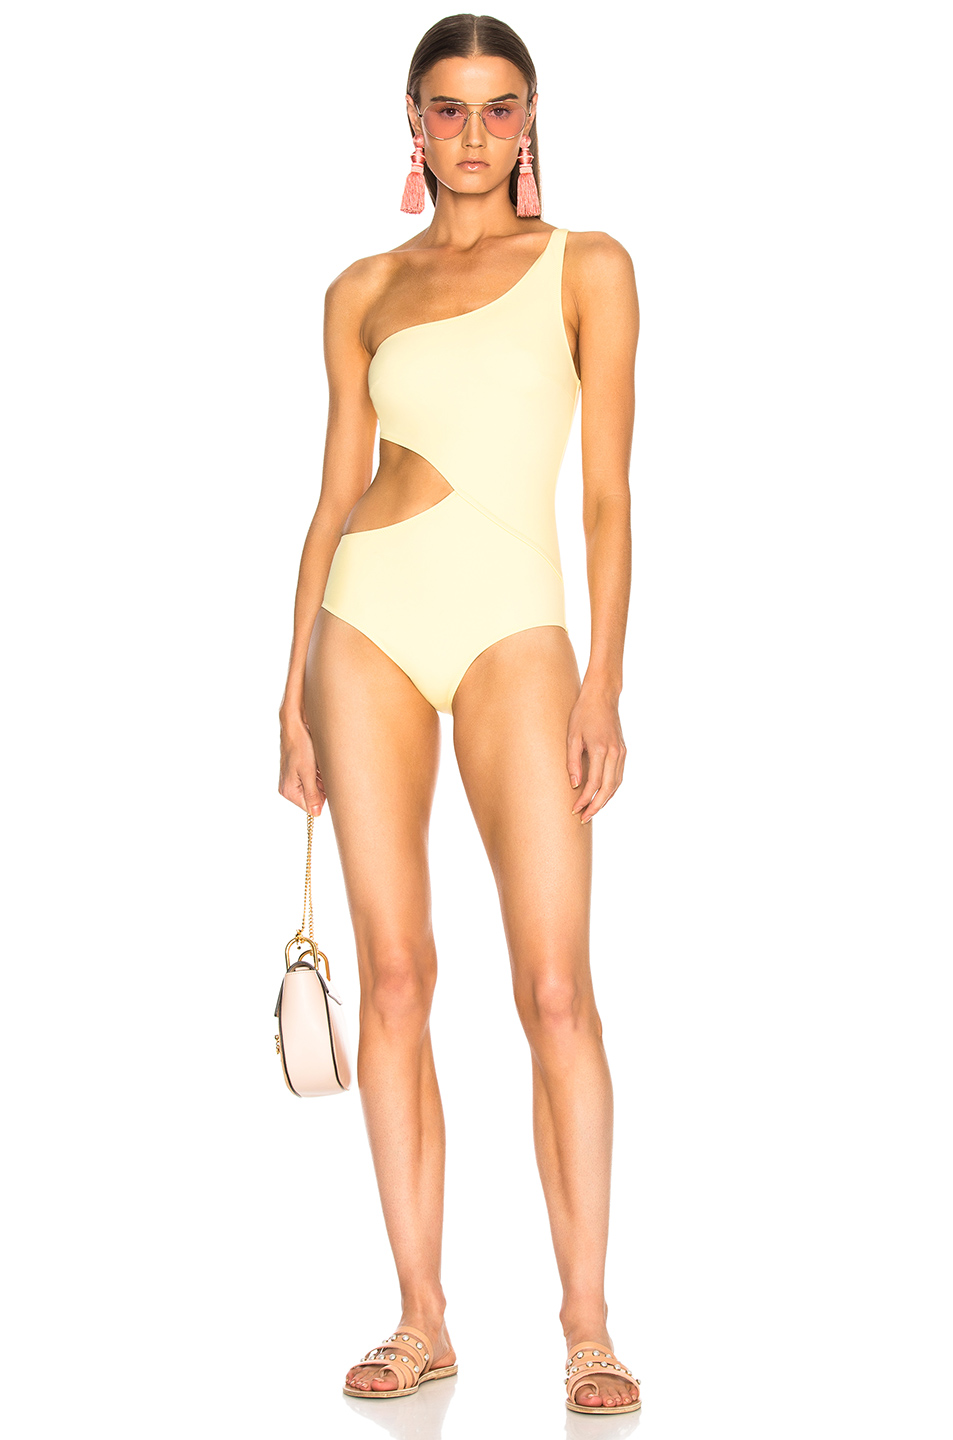 5a9b3ad52a2 Buy Original Solid & Striped Claudia Swimsuit at Indonesia | BOBOBOBO